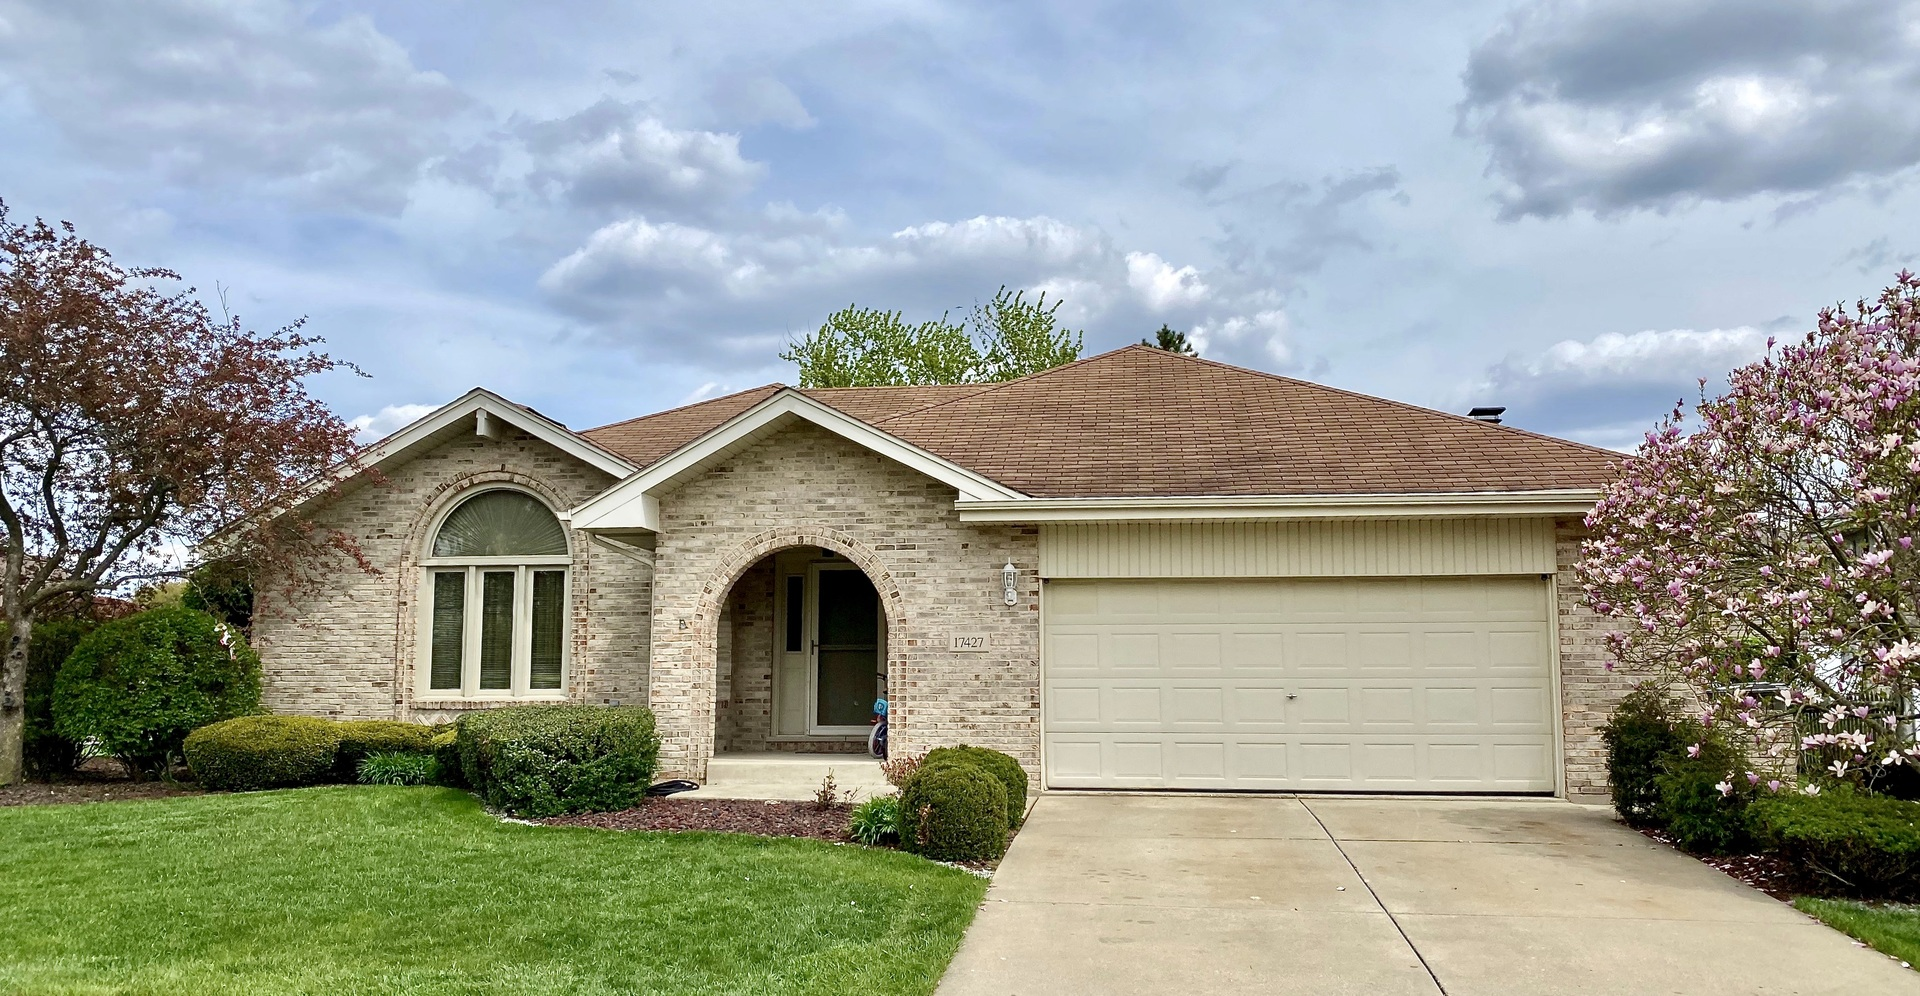 17427 Harvest Hill Drive, Orland Park, Illinois